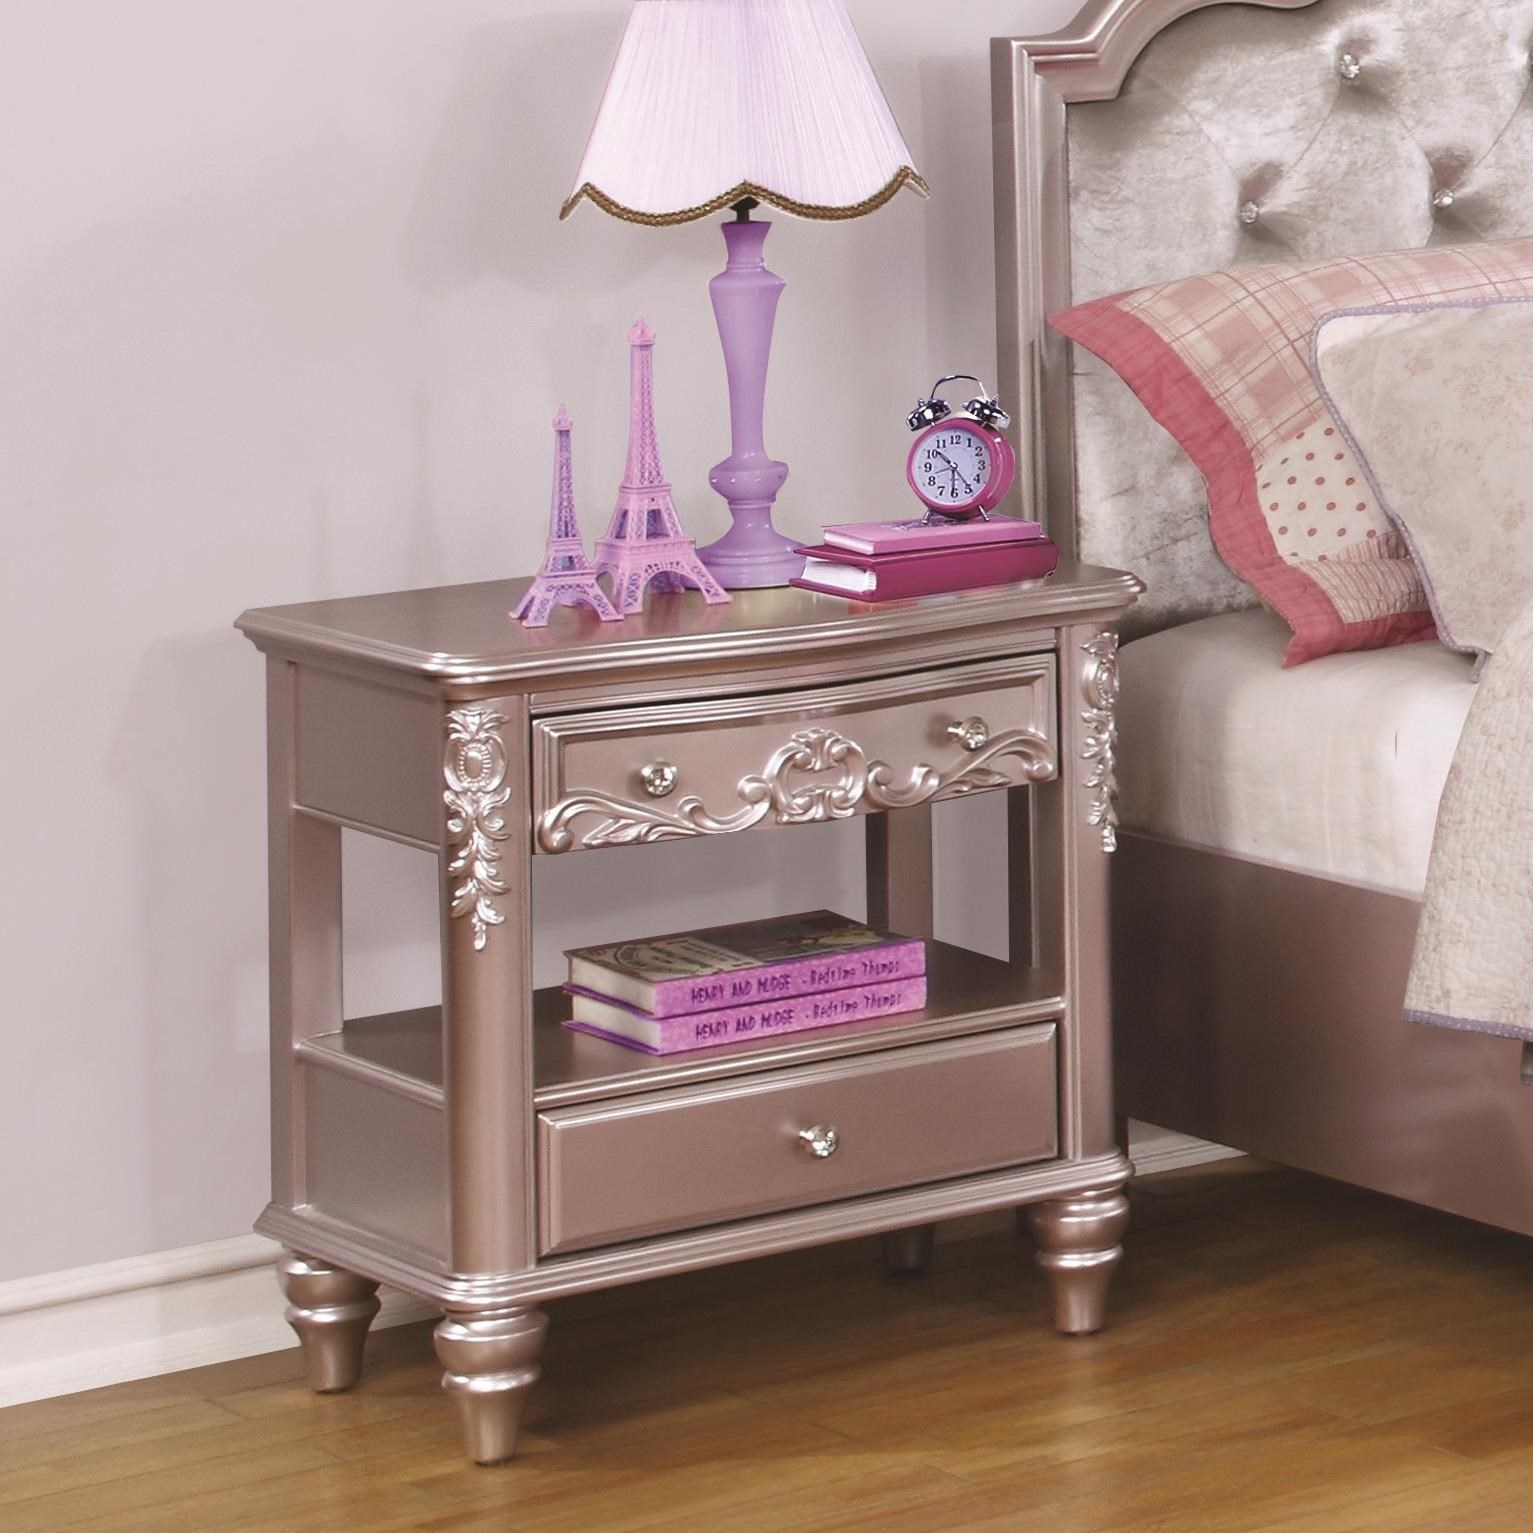 ... Coco Furniture Gallery By Prince Nightstand Coco Furniture Gallery  Furnishing Dreams ...